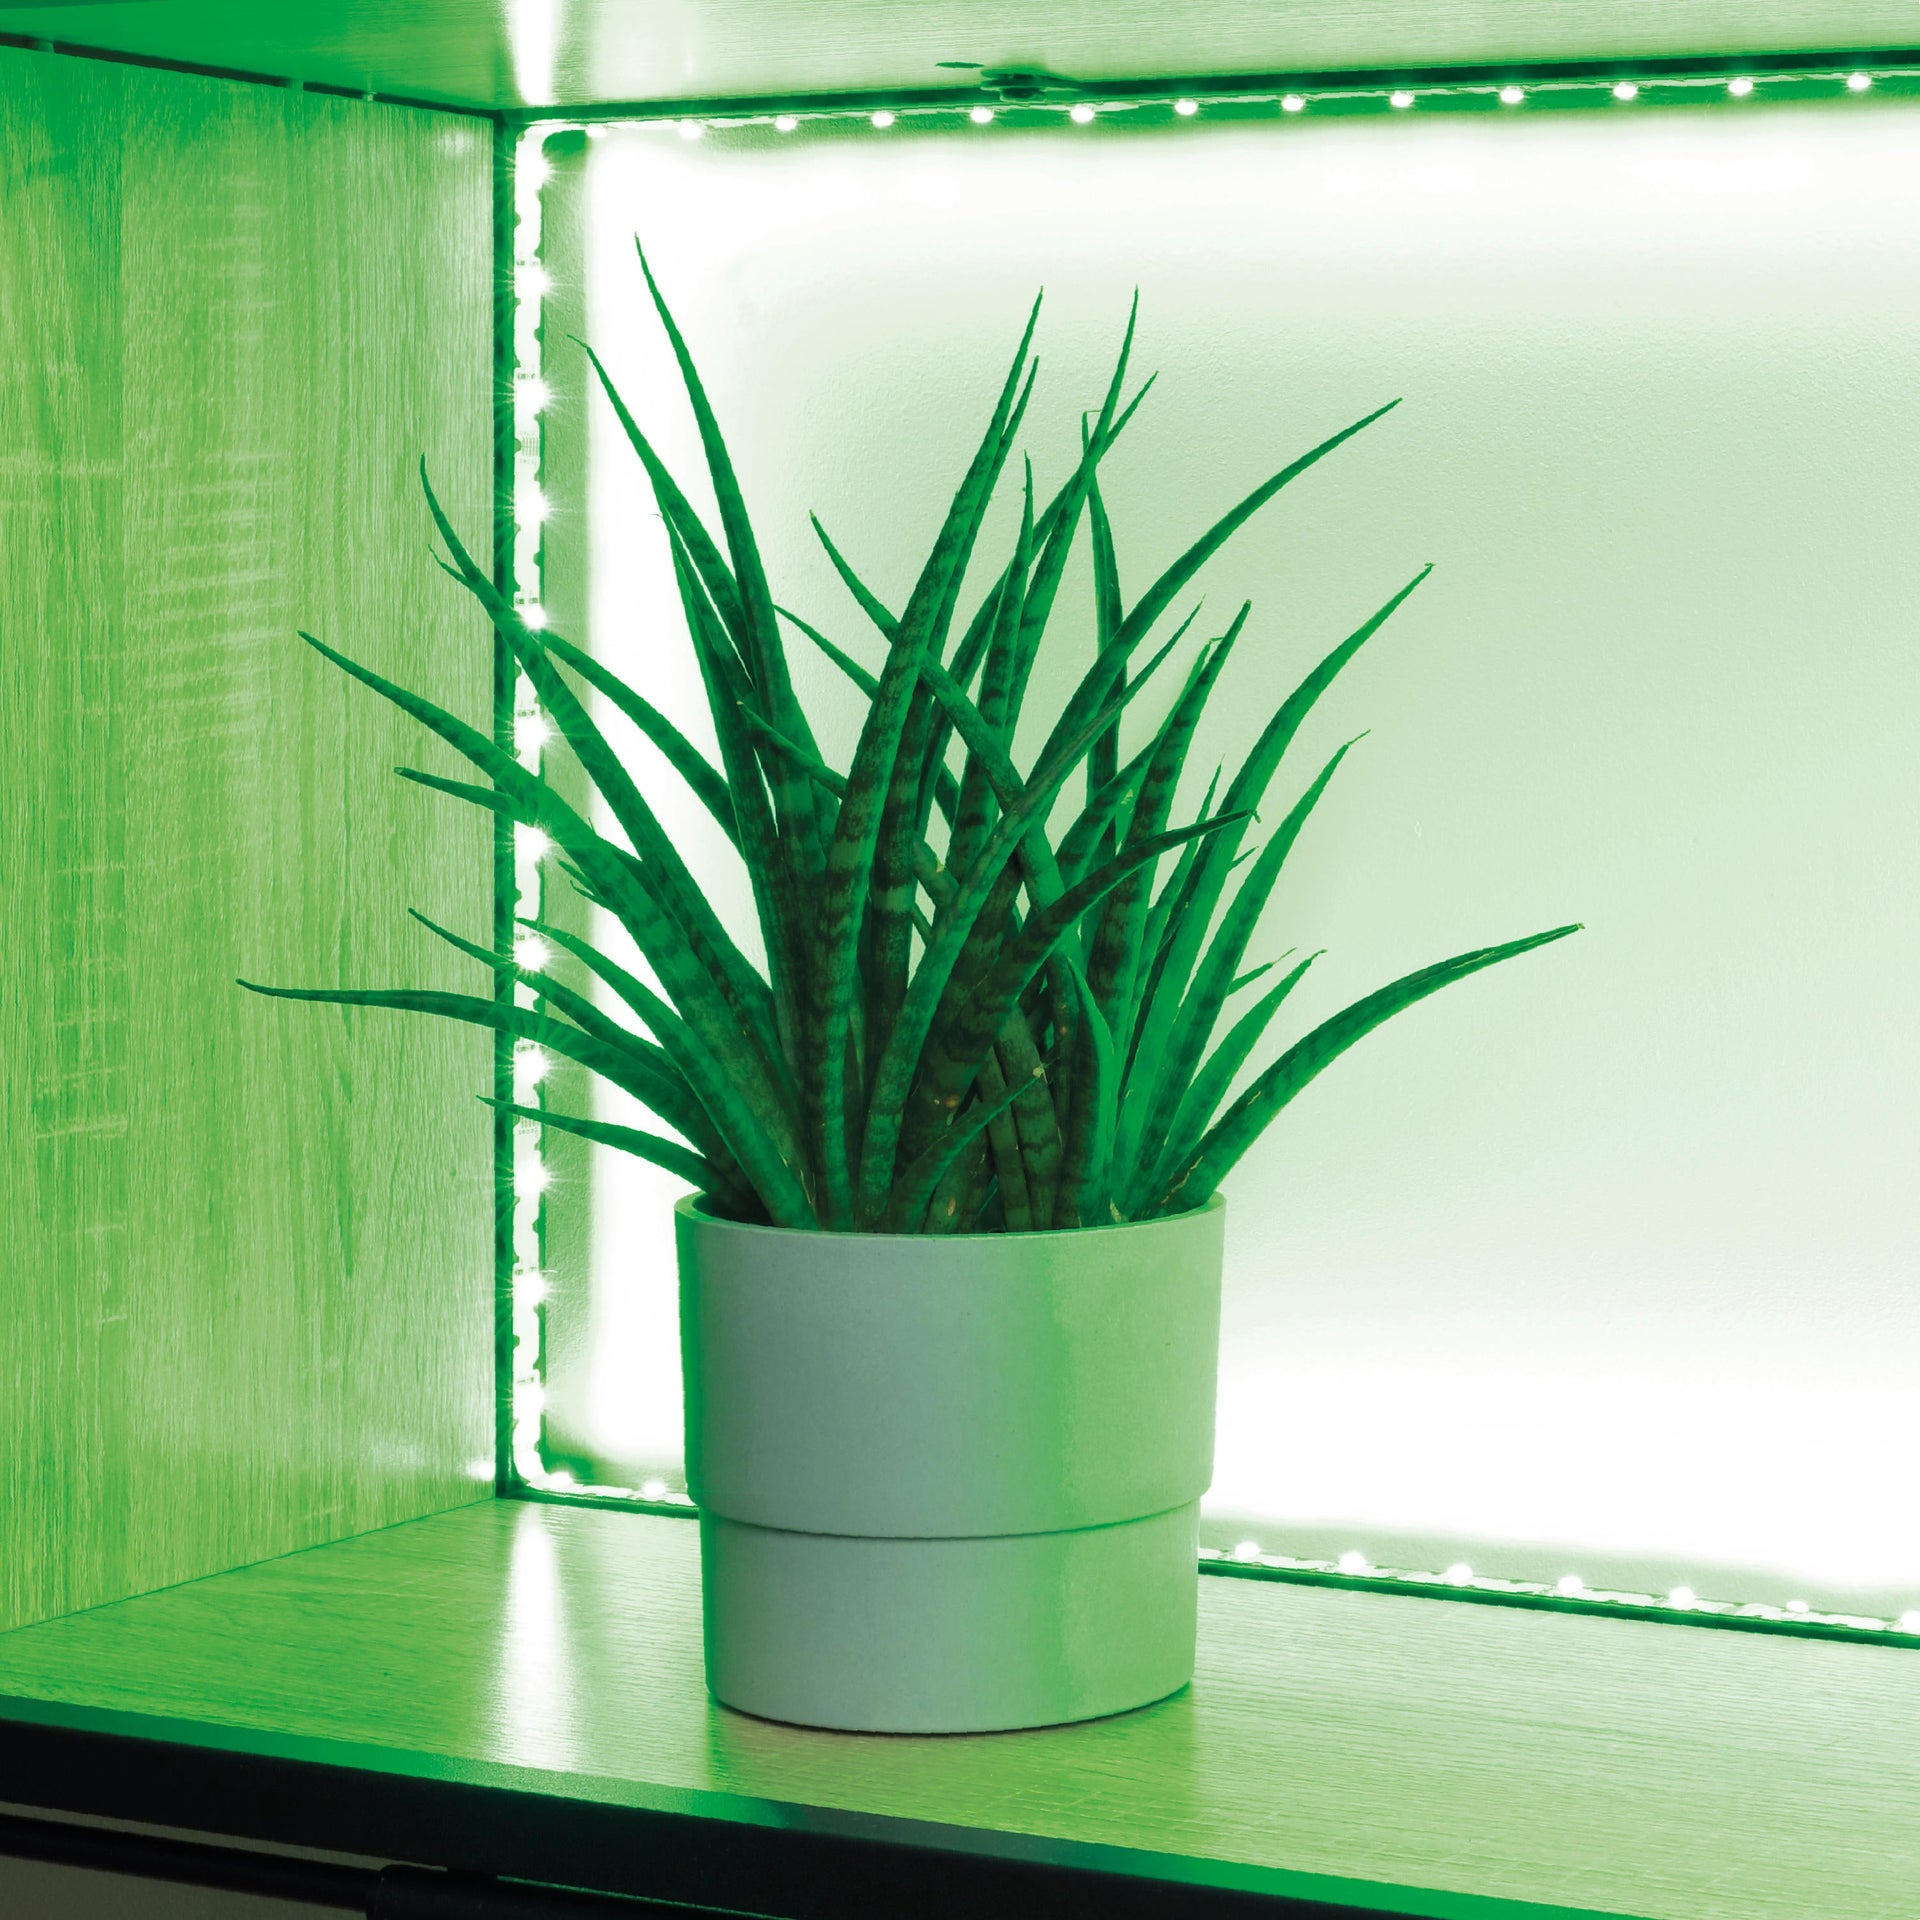 Striscia led Movaled 5m luce colore cangiante<multisep/>bianco 240LM IP20 INSPIRE - 7